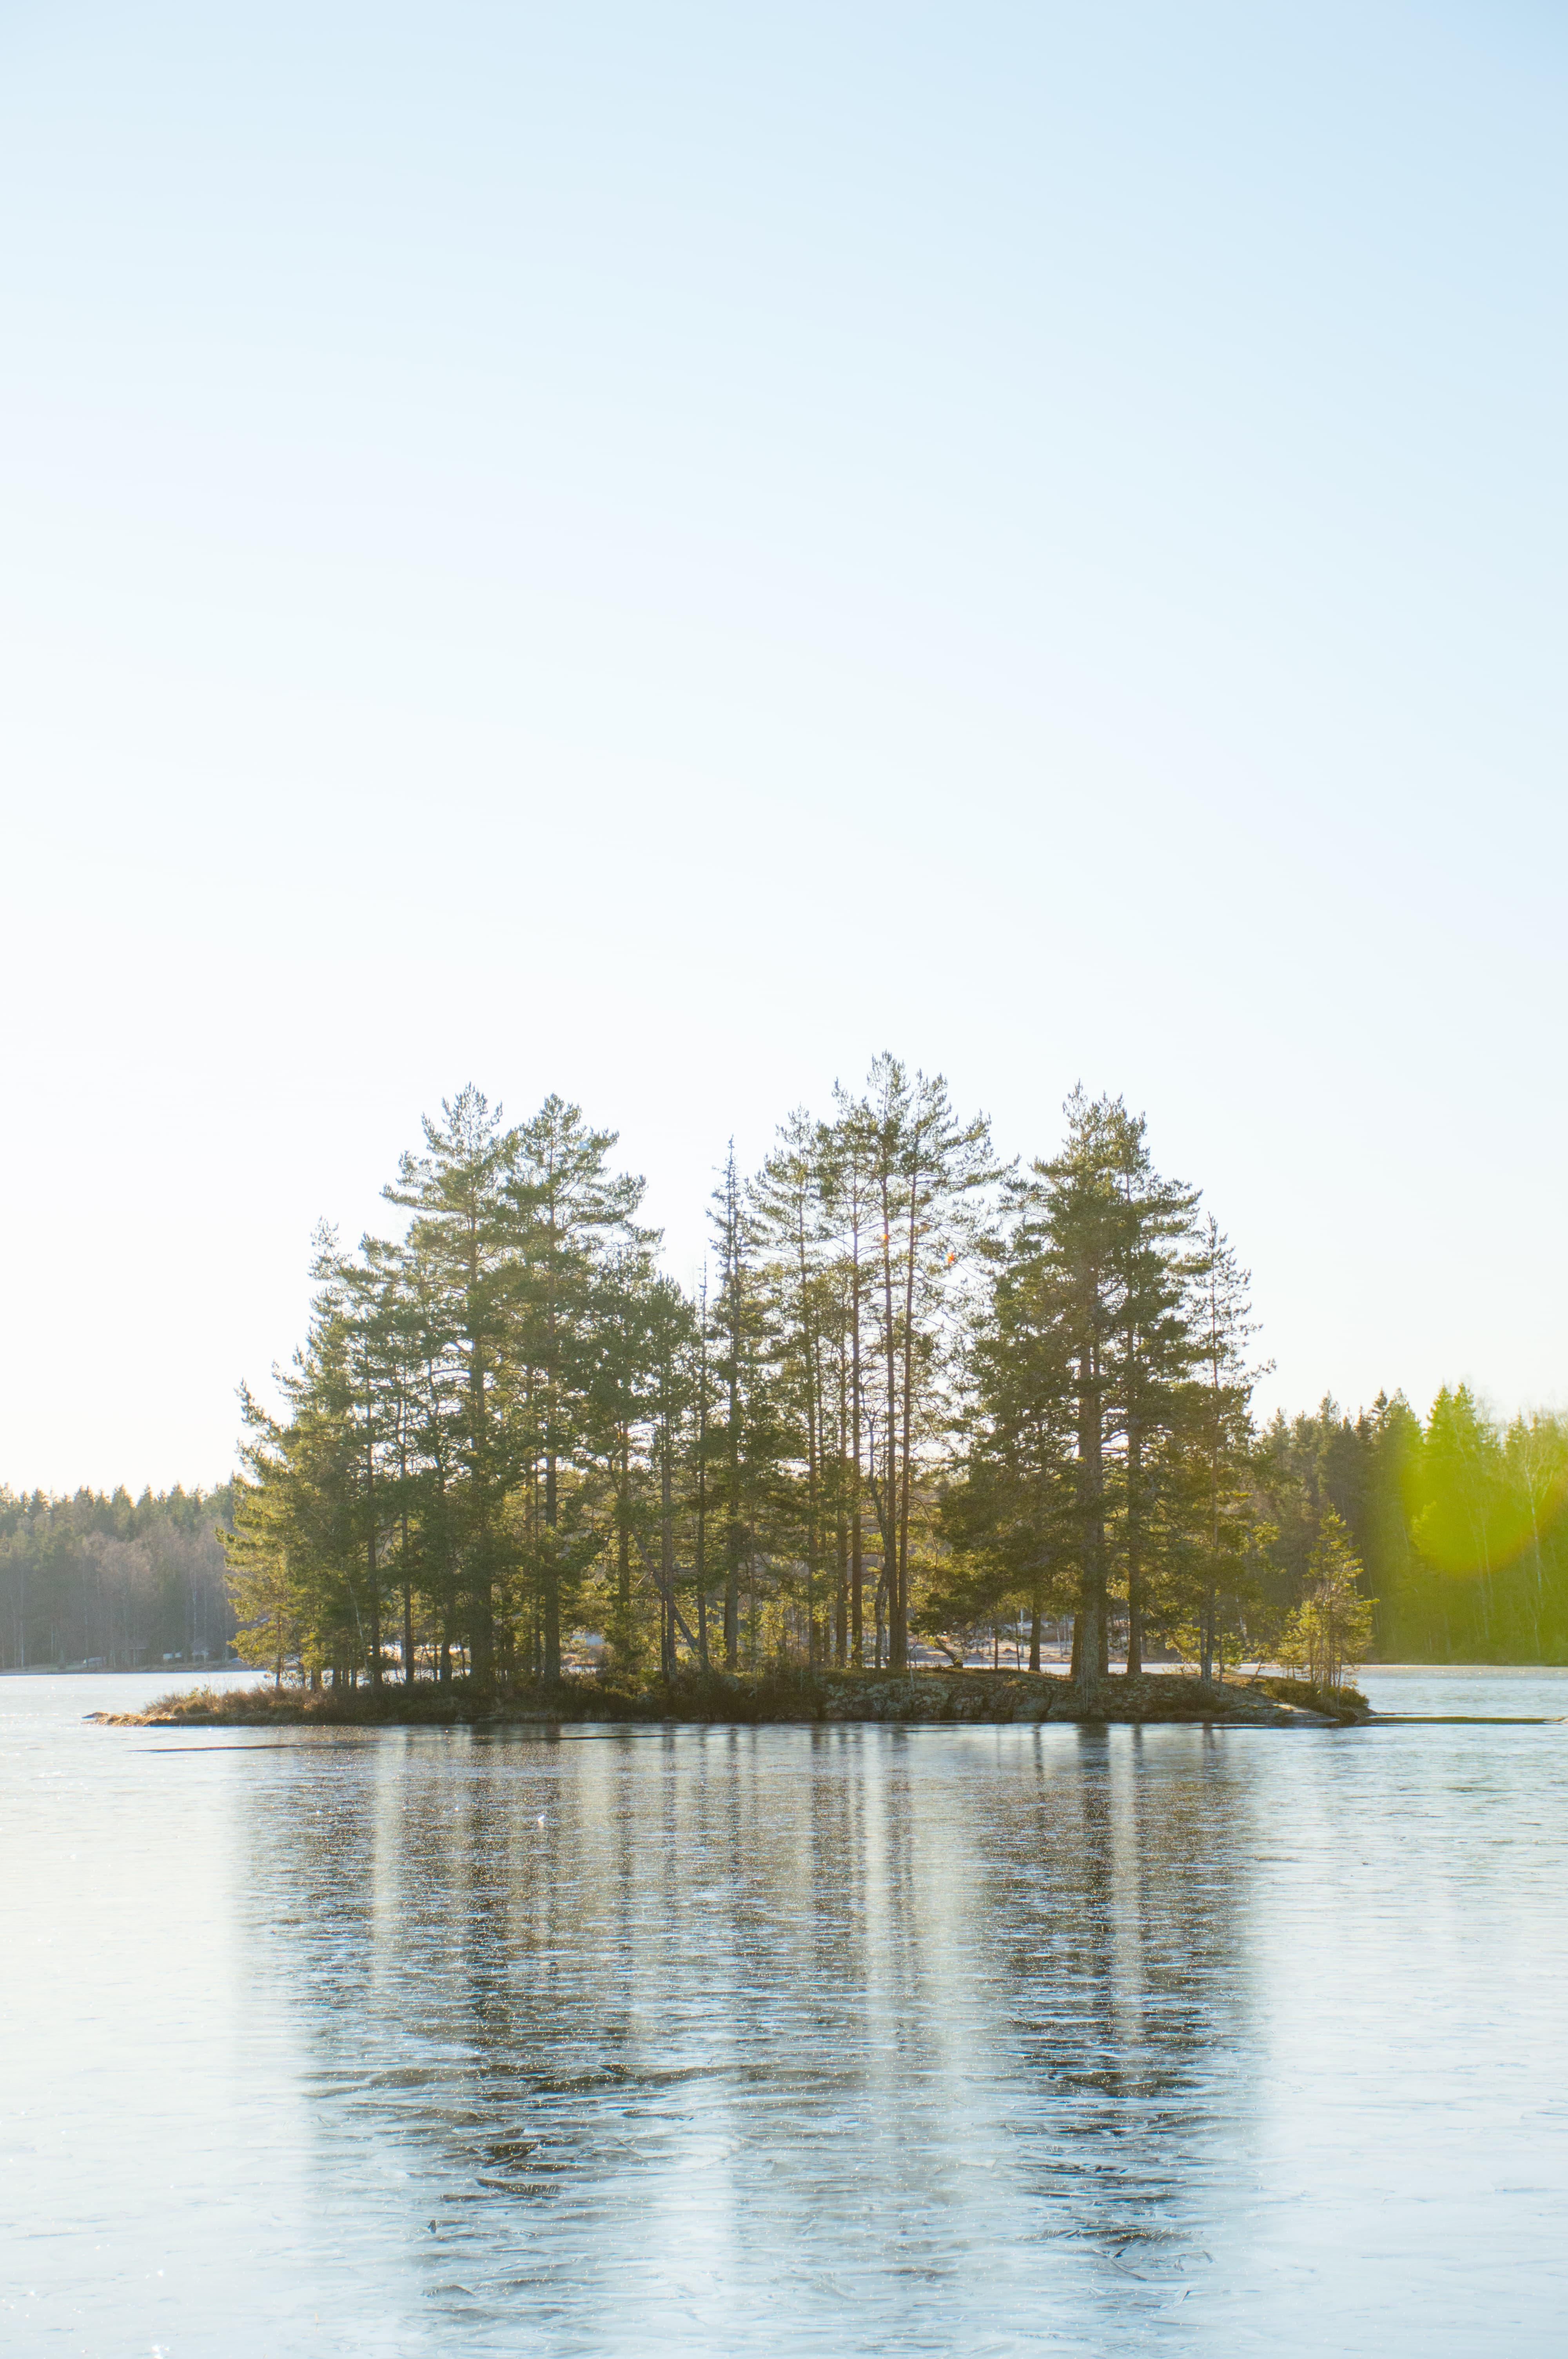 Little island of trees during winter